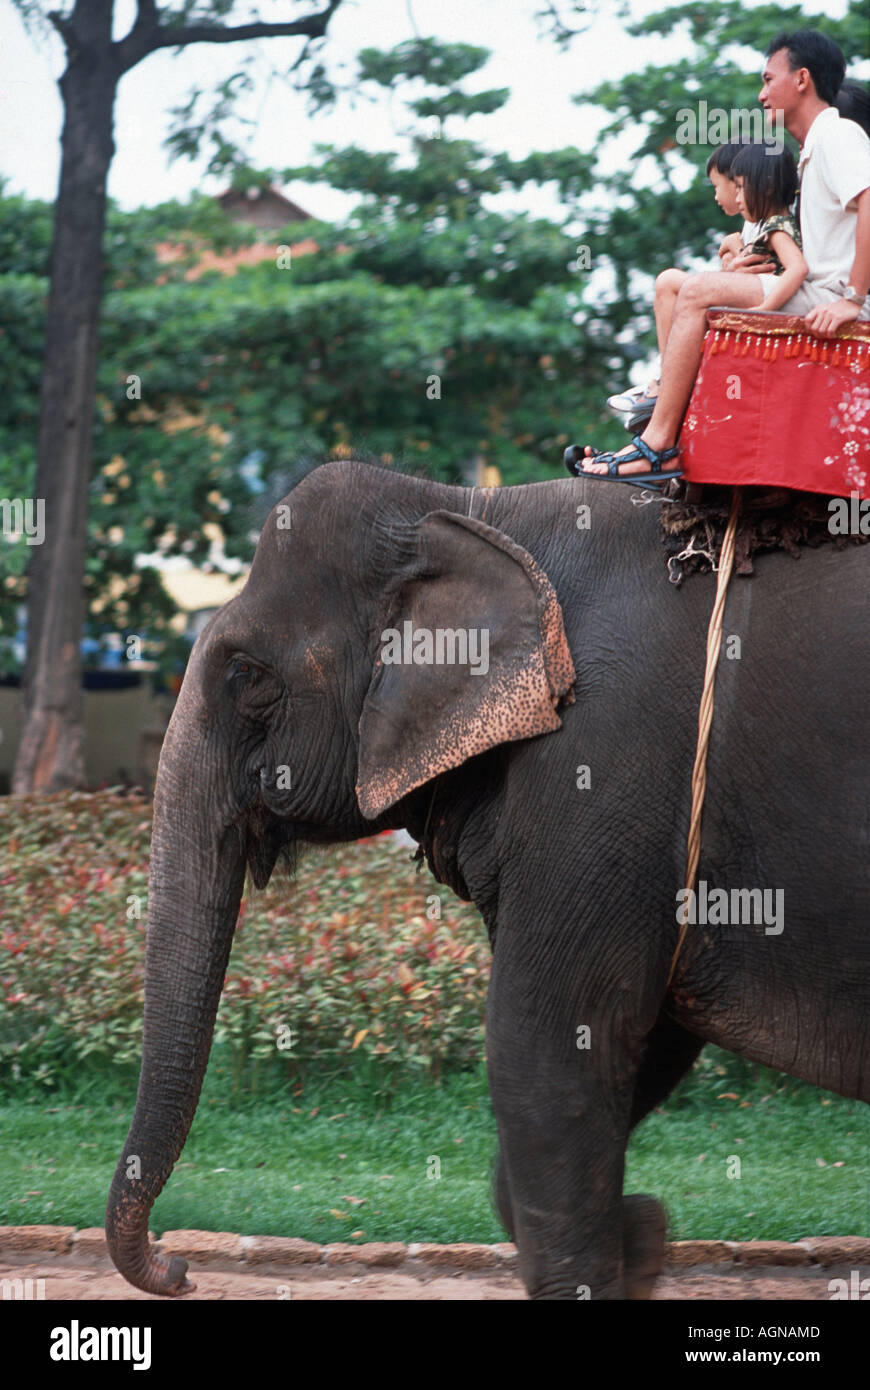 Cambodian father and children riding on an elephant at Wat Phnom Phnom Penh Cambodia Southeast Asia - Stock Image